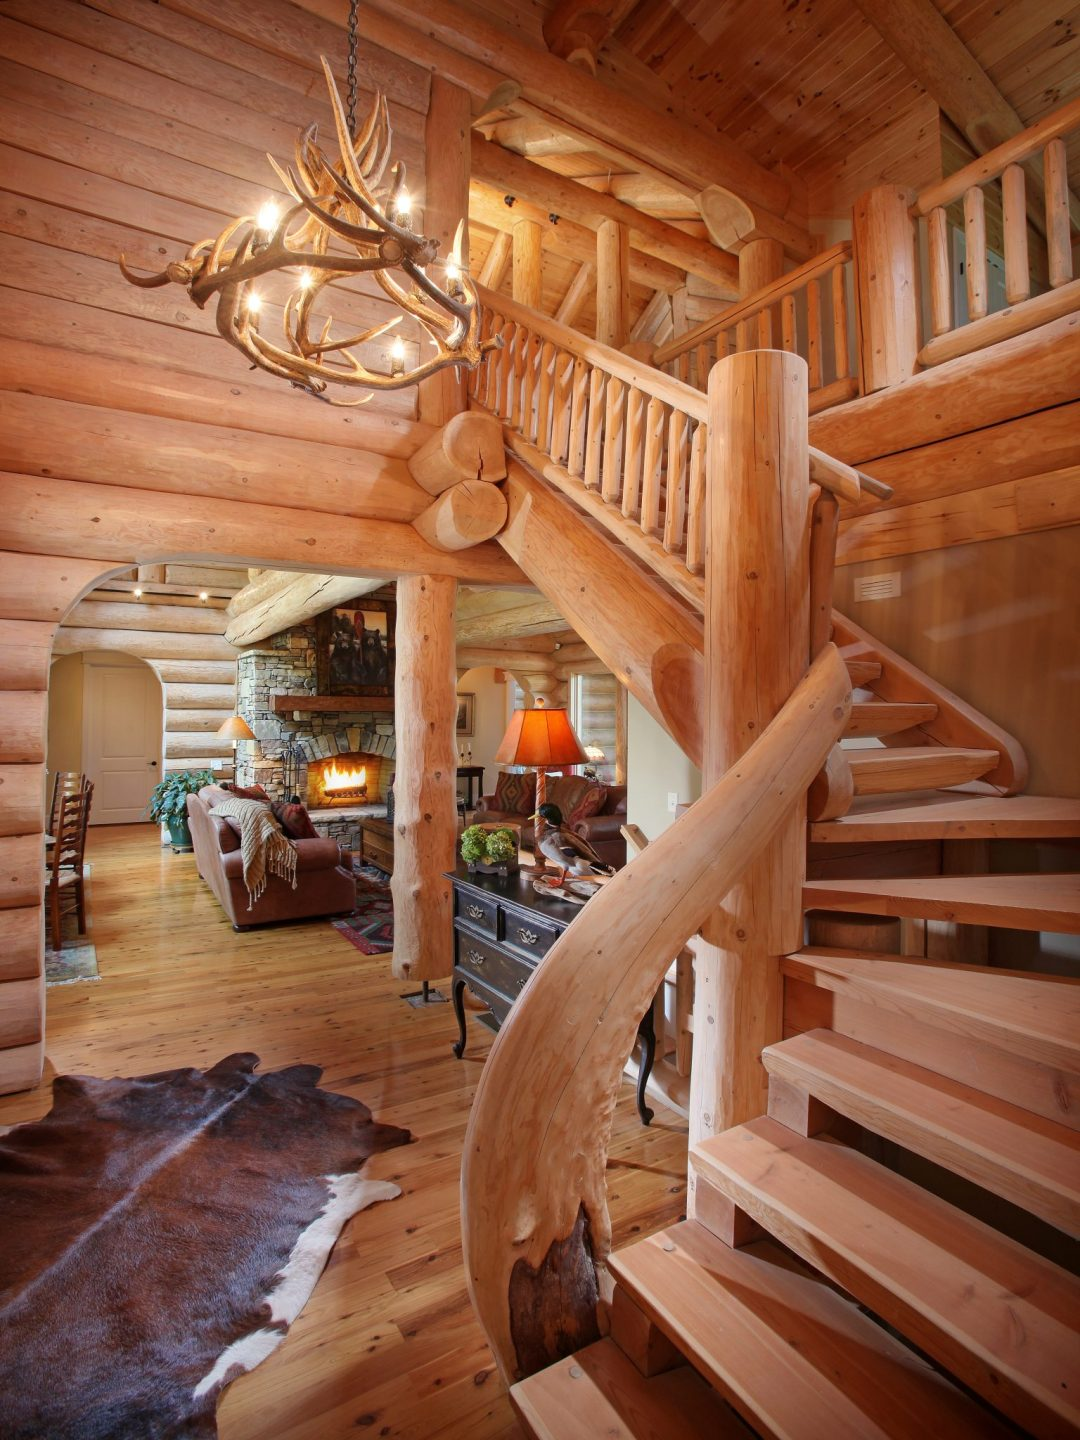 Handcrafted stairs with natural curves